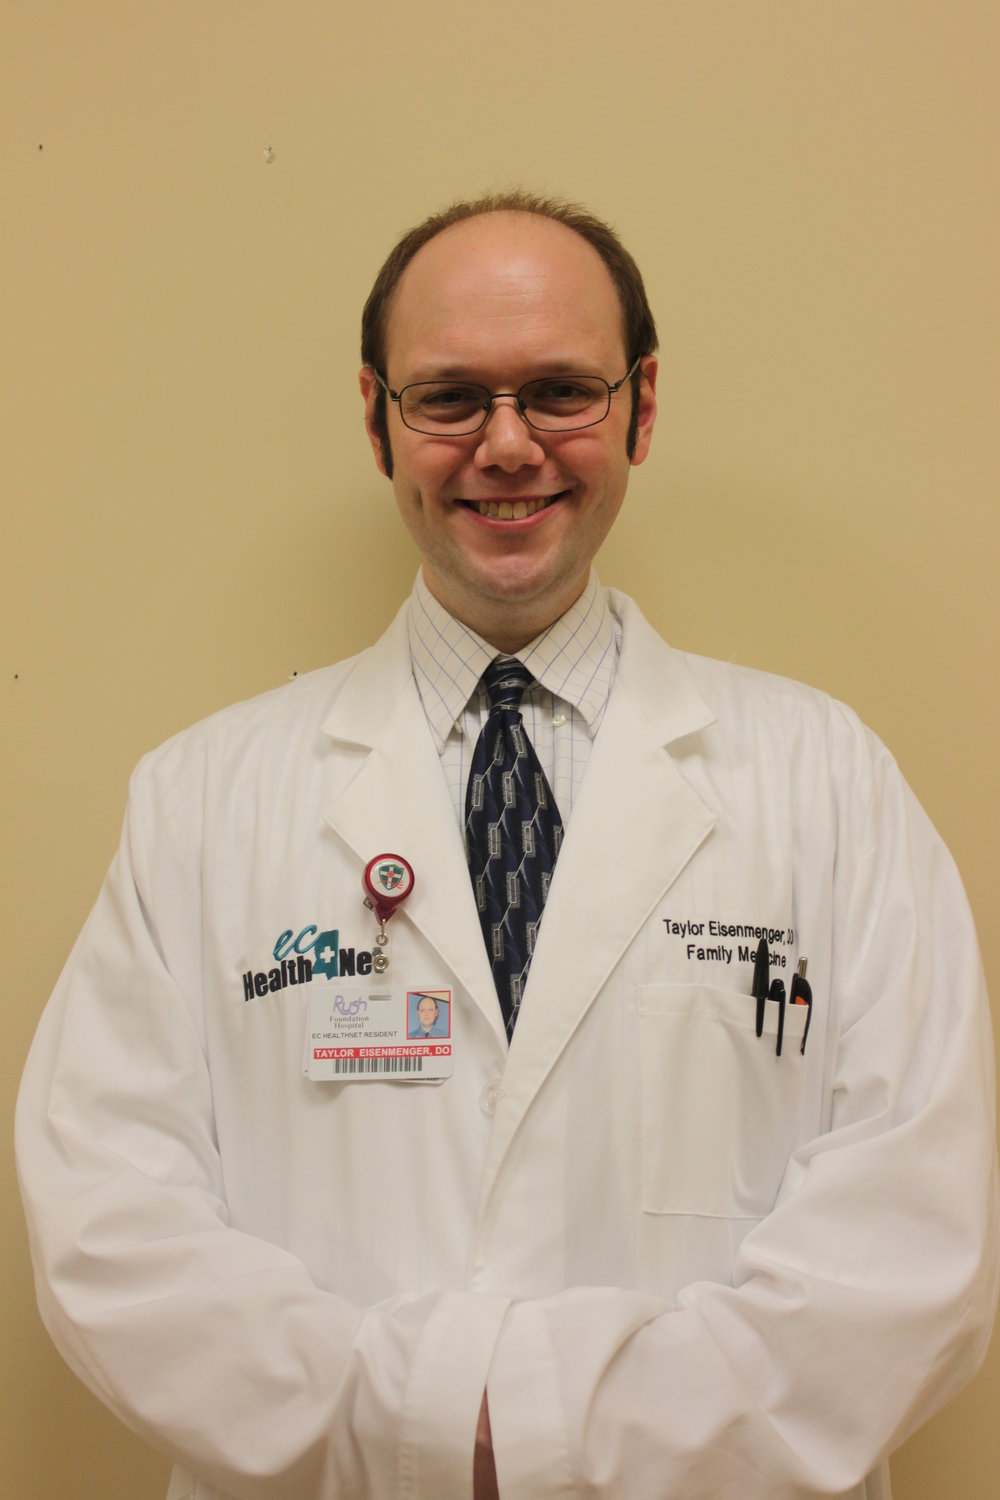 "Dr. Taylor Eisenmenger, D.O. Dr. Taylor James Eisenmenger was born in Louisville, Ky where he attended college at Bellarmine University. After graduation, he went on to attend the Kentucky College of Osteopathic Medicine in Pikeville, Ky. Eventually finding his way to Mississippi, he is pursuing knowledge of family medicine in this residency program. Since his name is not so easy to pronounce or remember, ""Dr. Taylor"" or ""Dr. E."" and others are fine alternatives."